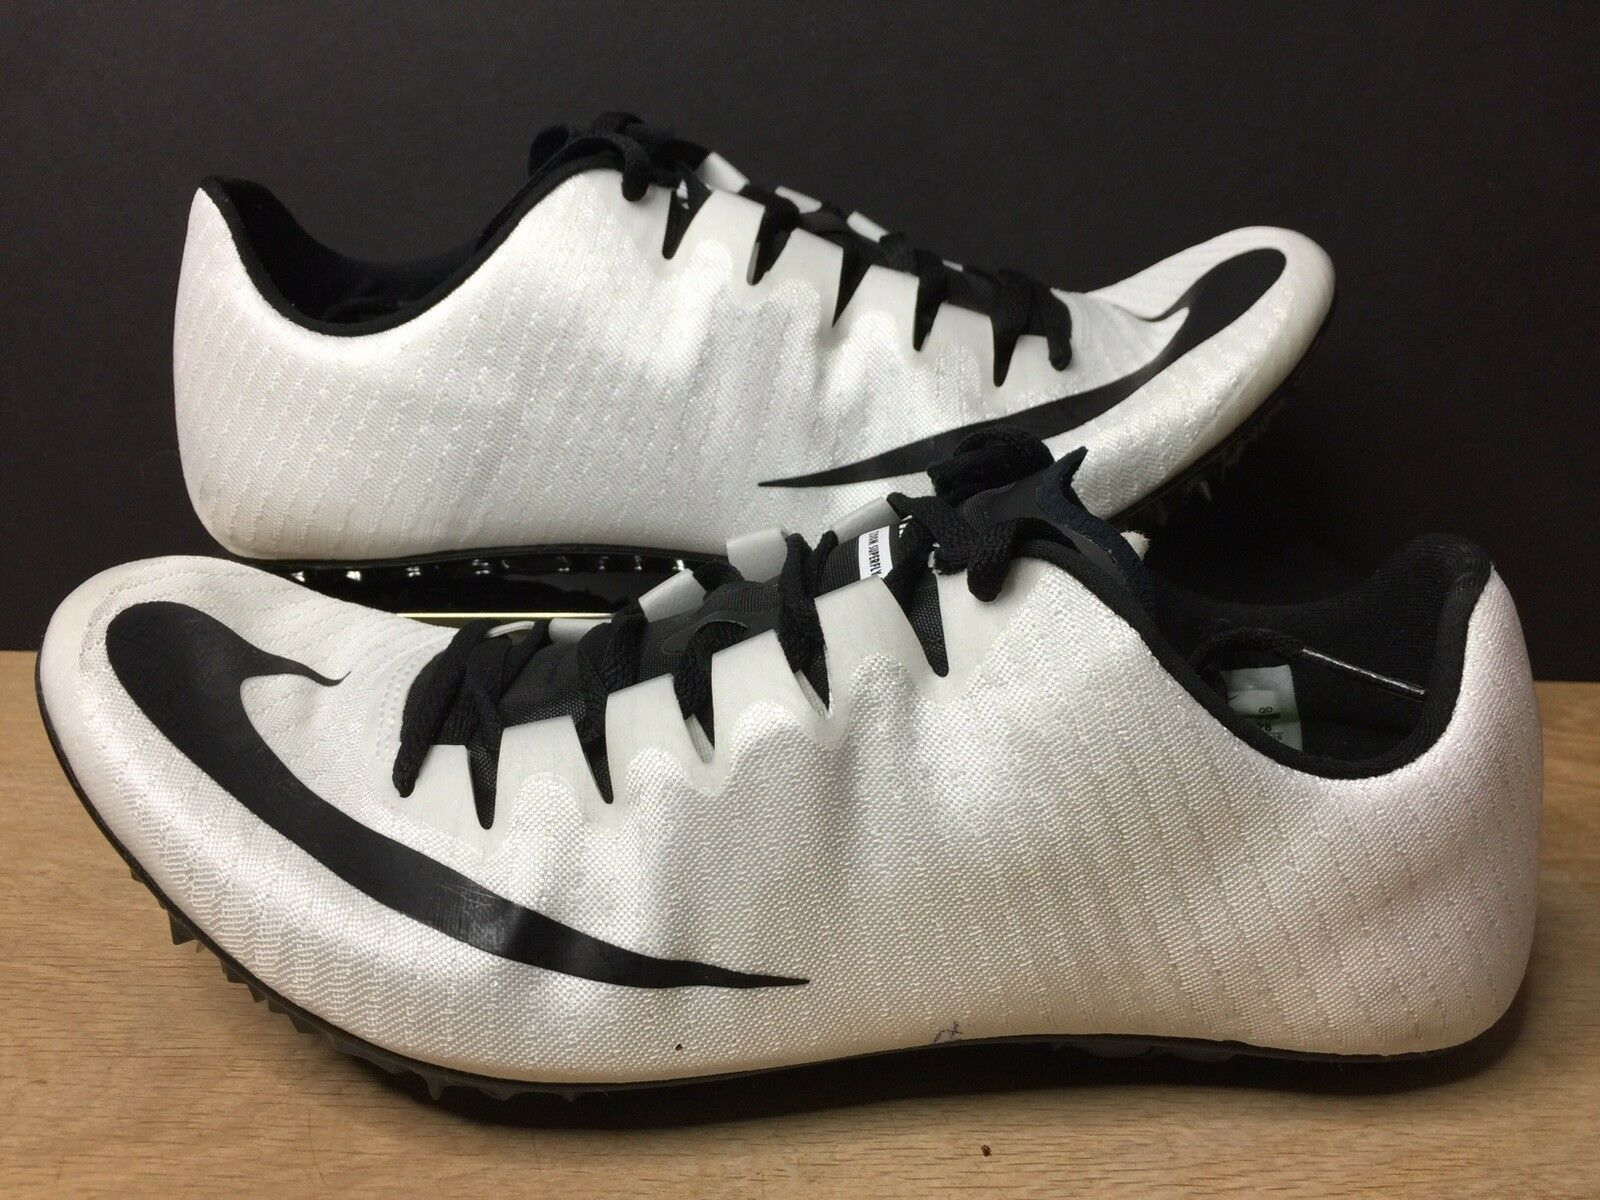 purchase cheap 0b828 0658b Nike Superfly Elite Unisex Track Spikes shoes White 835996-107 Mens Mens  Mens Size 10.5